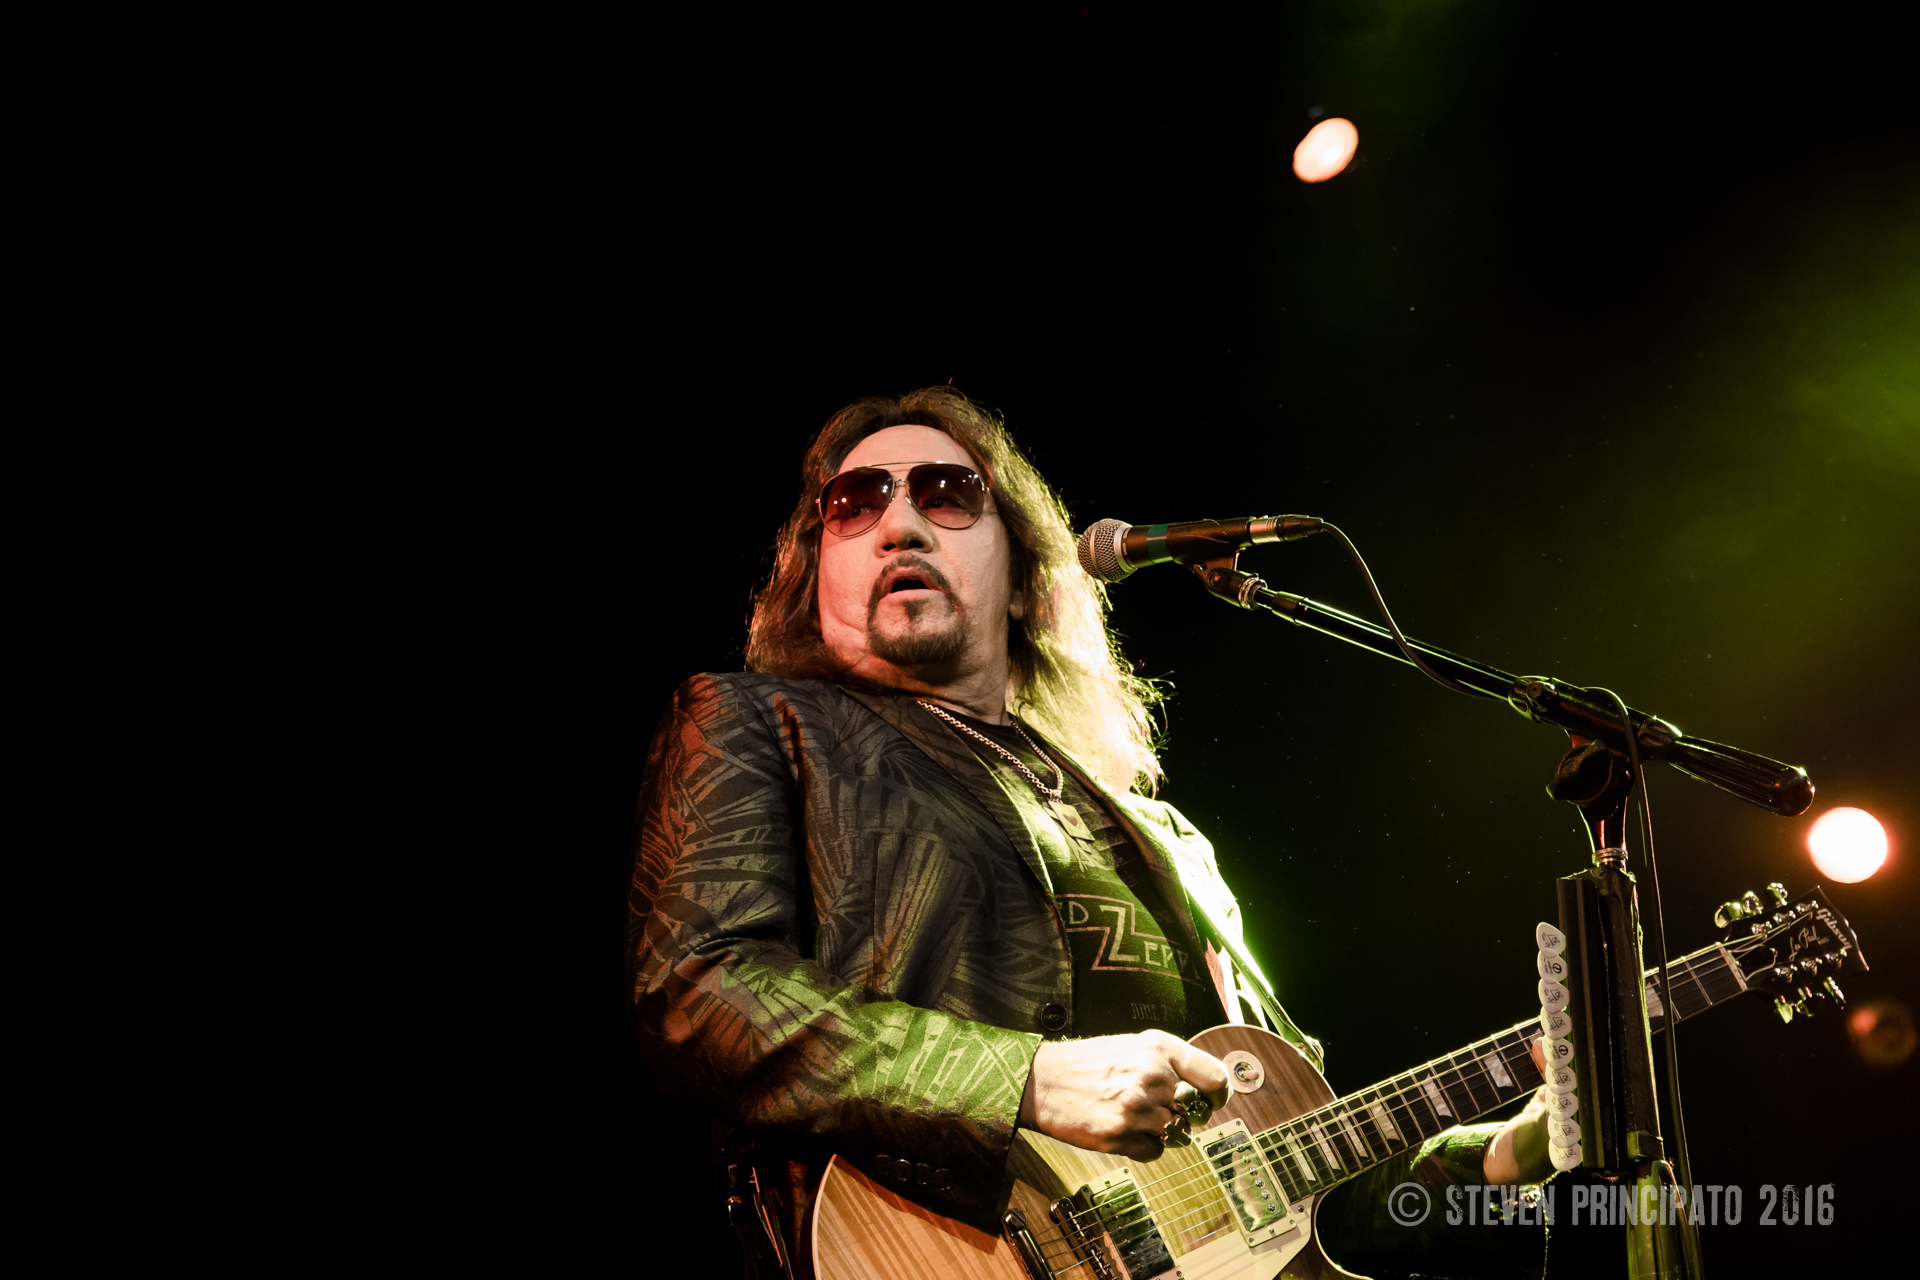 video xhssfh kiss ace frehley new york groove live music